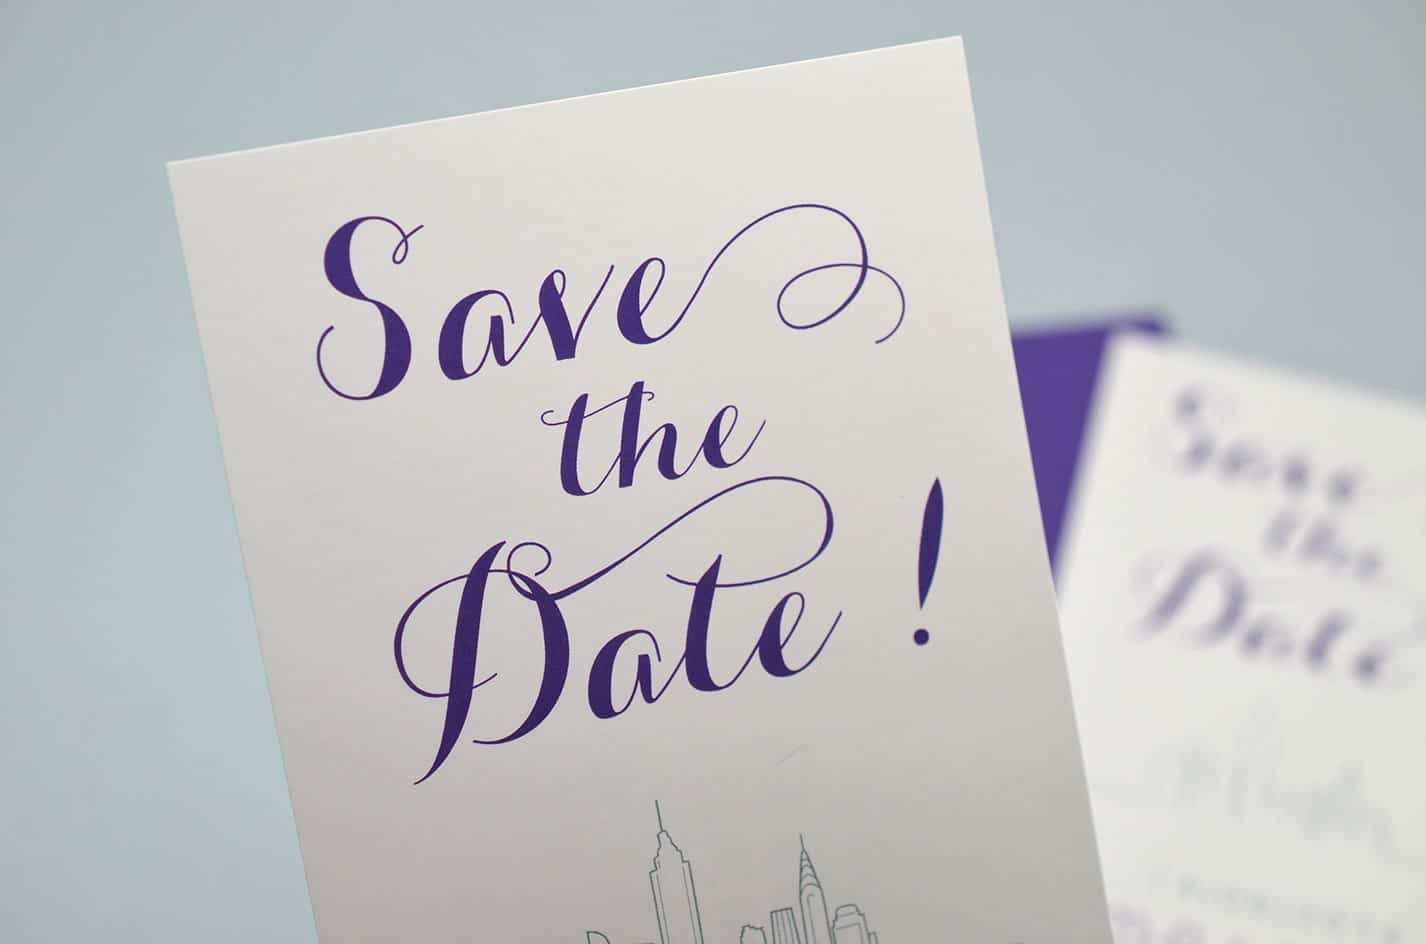 Save the date sur mesure mariage new york design violet skyline latelierdelsa